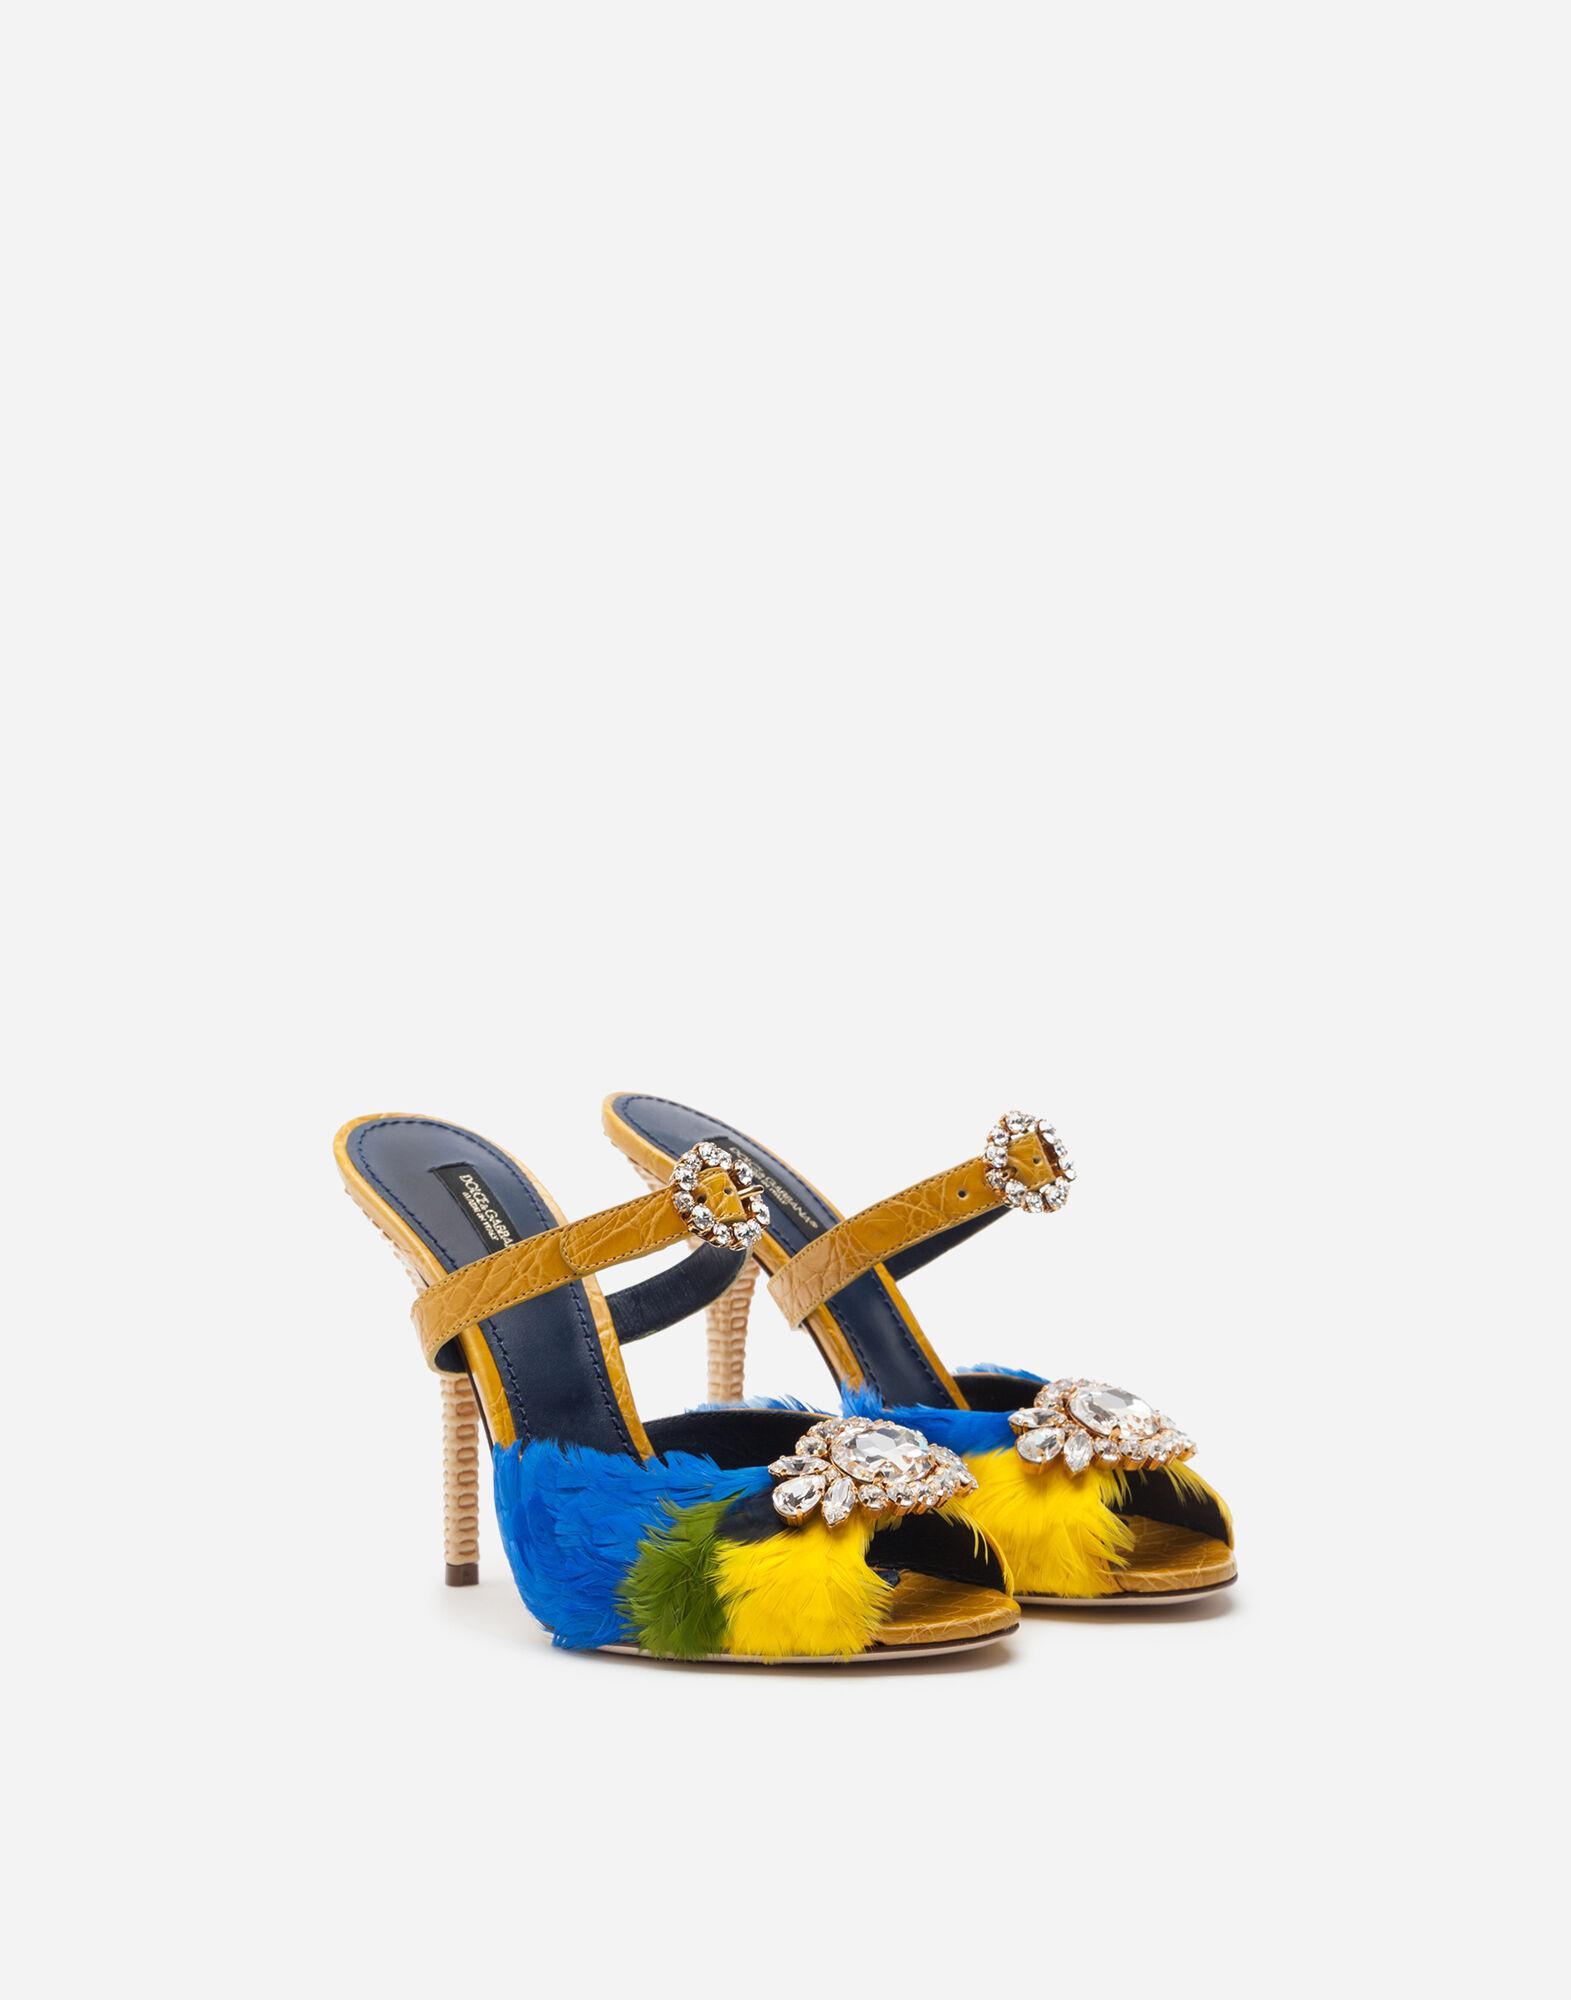 Crocodile flank leather and feather mules with jewel embroidery 1